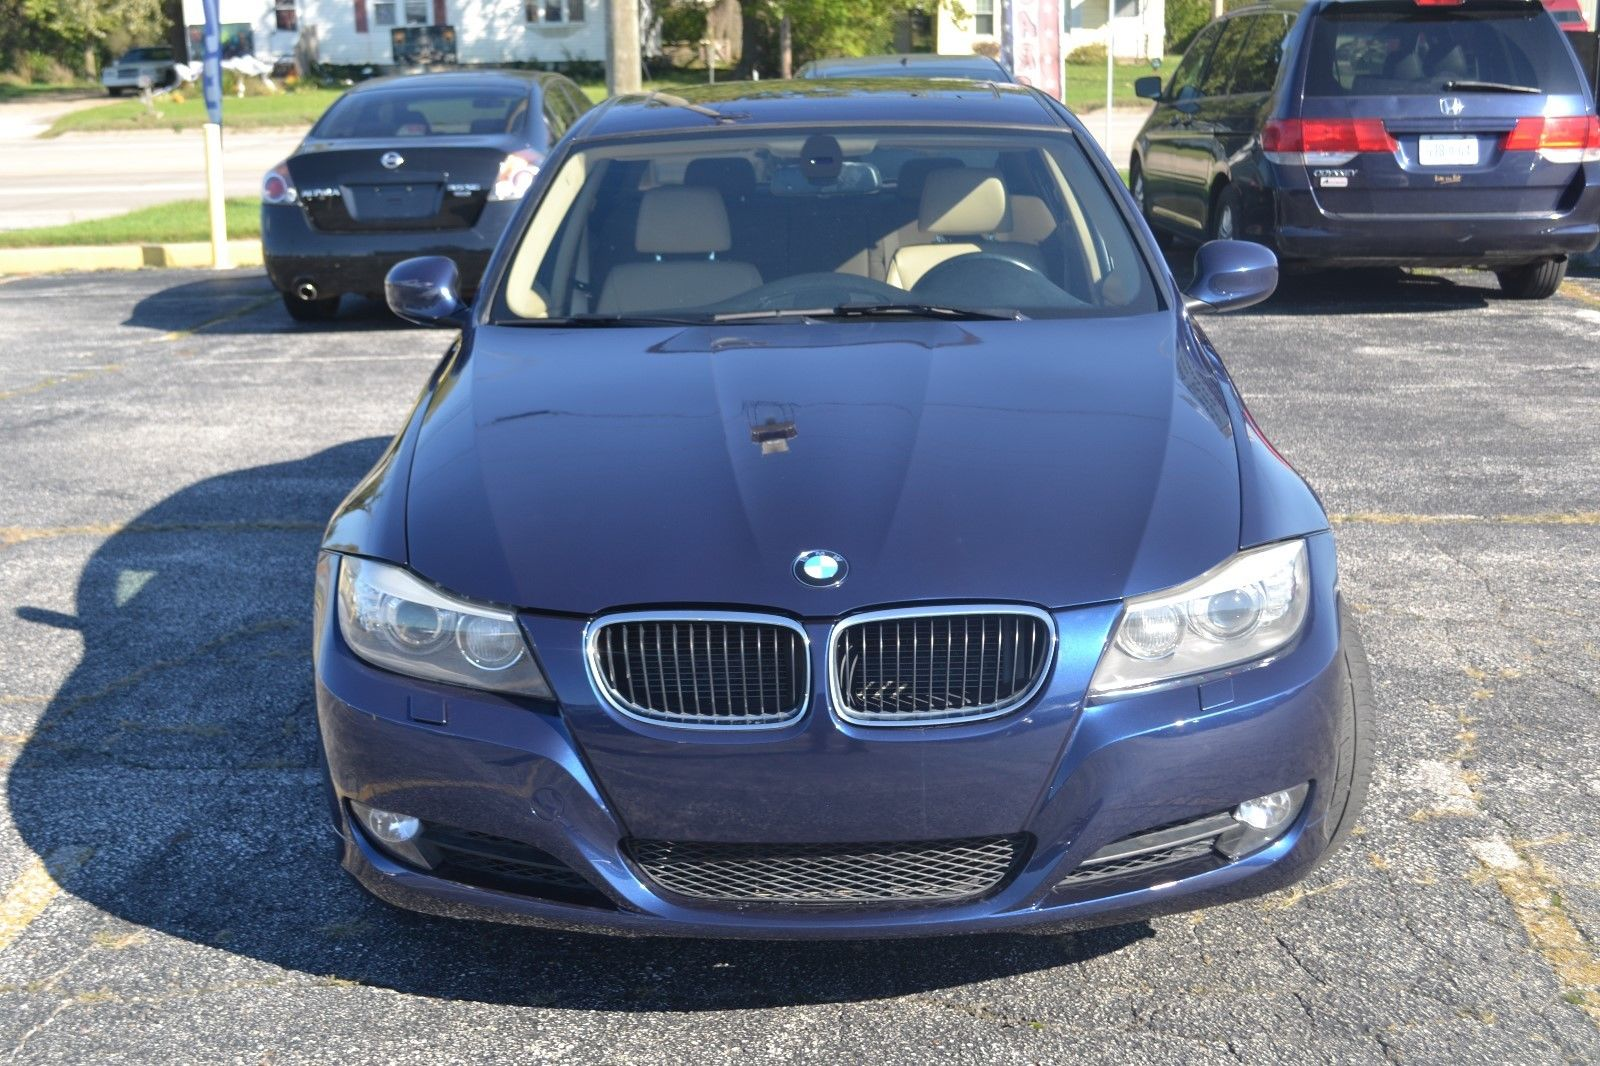 Awesomeamazinggreat Bmw Series Bmw Xi Awd Navi Sunroof Htd Leather Sport Package Push Start